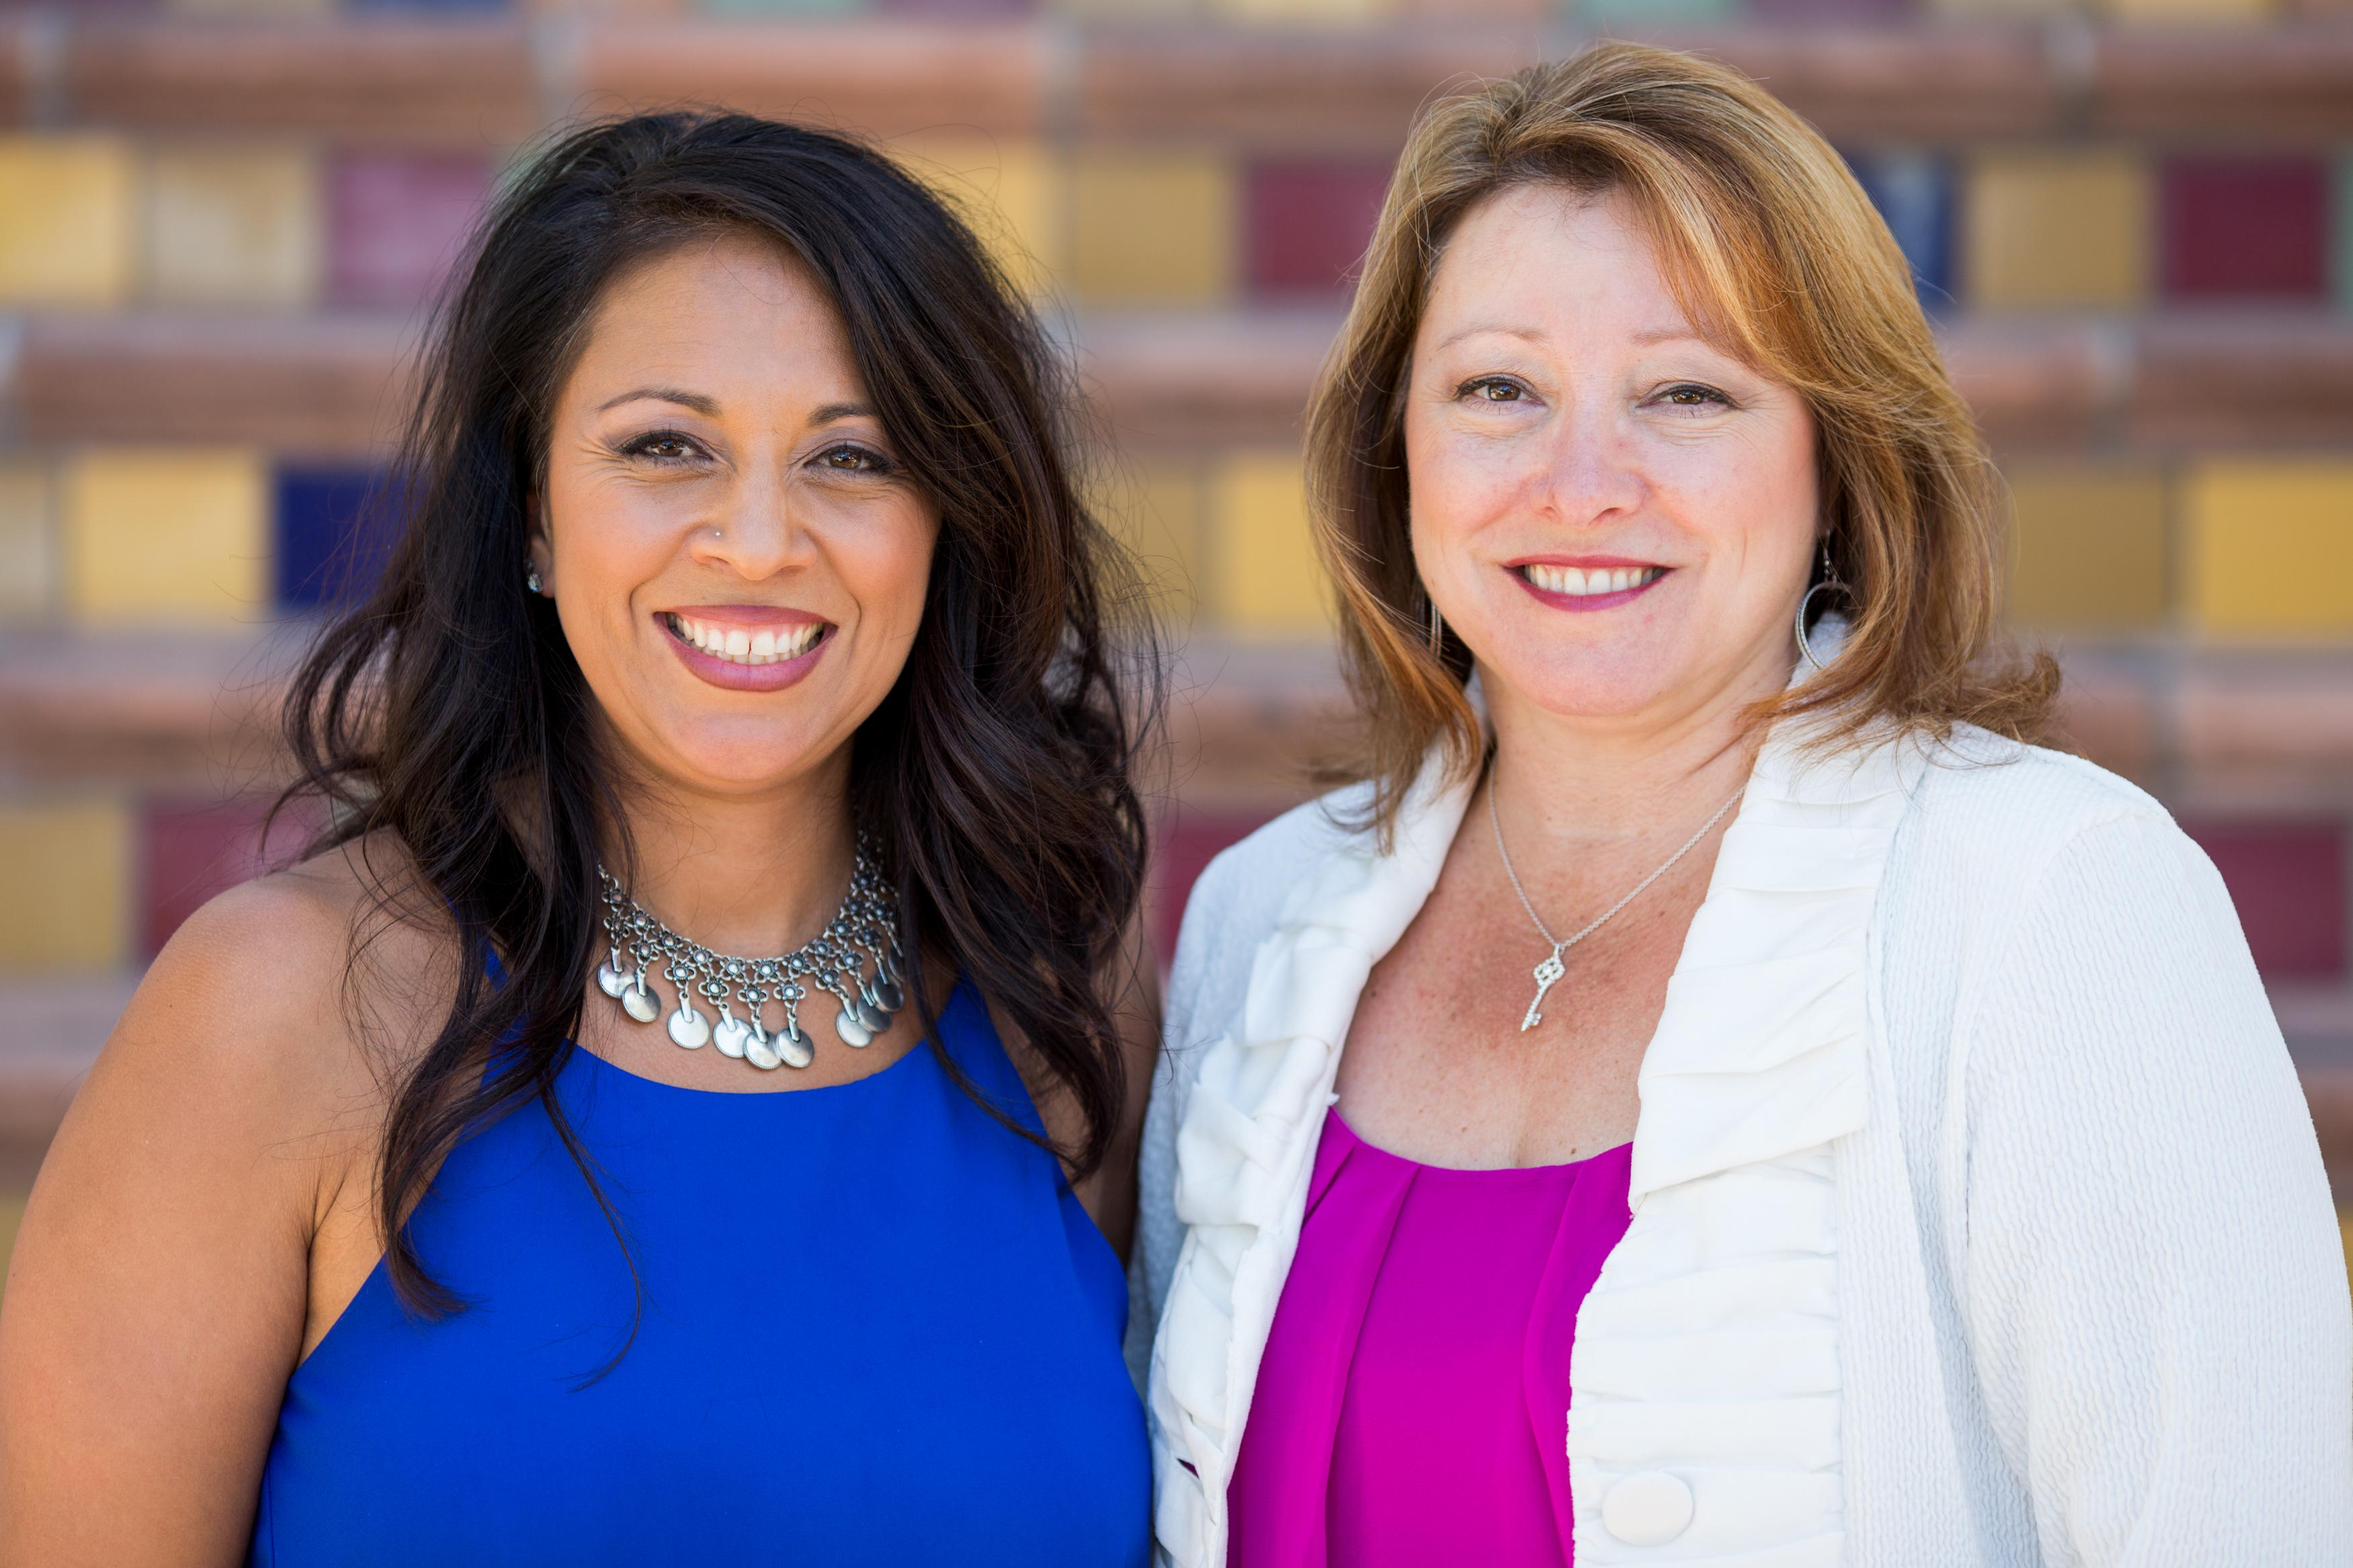 Michele Campbell Insurance Services